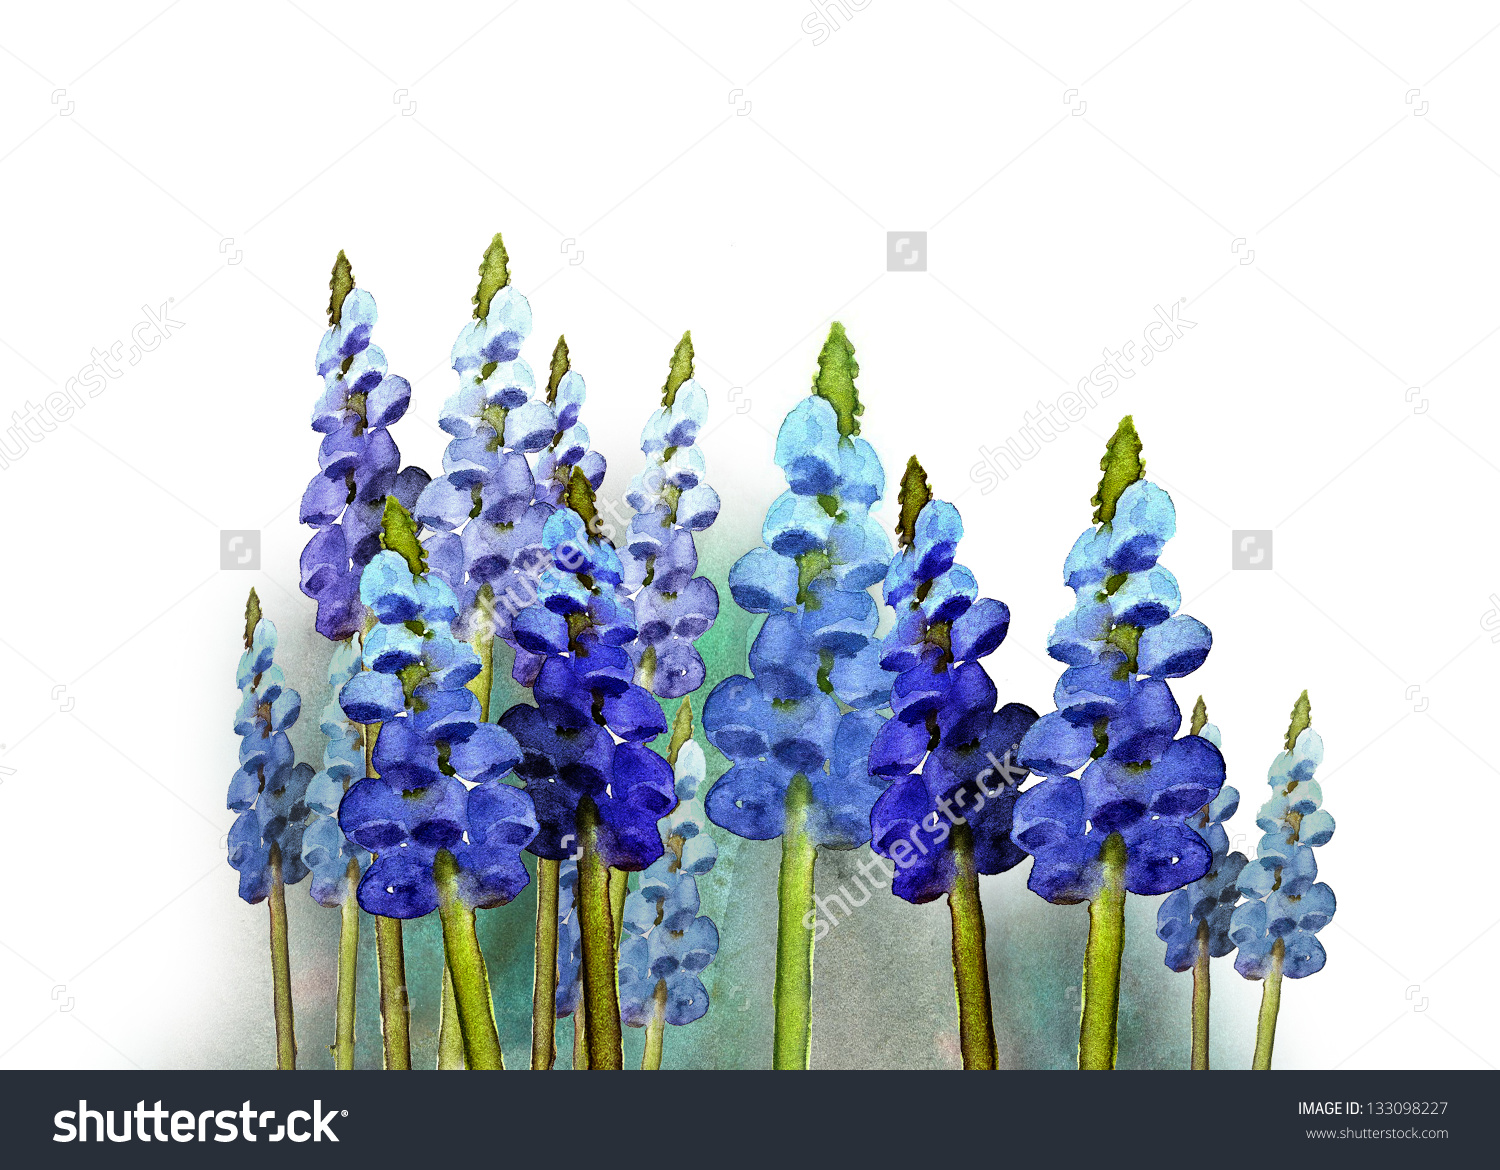 Grape Hyacinth clipart #12, Download drawings